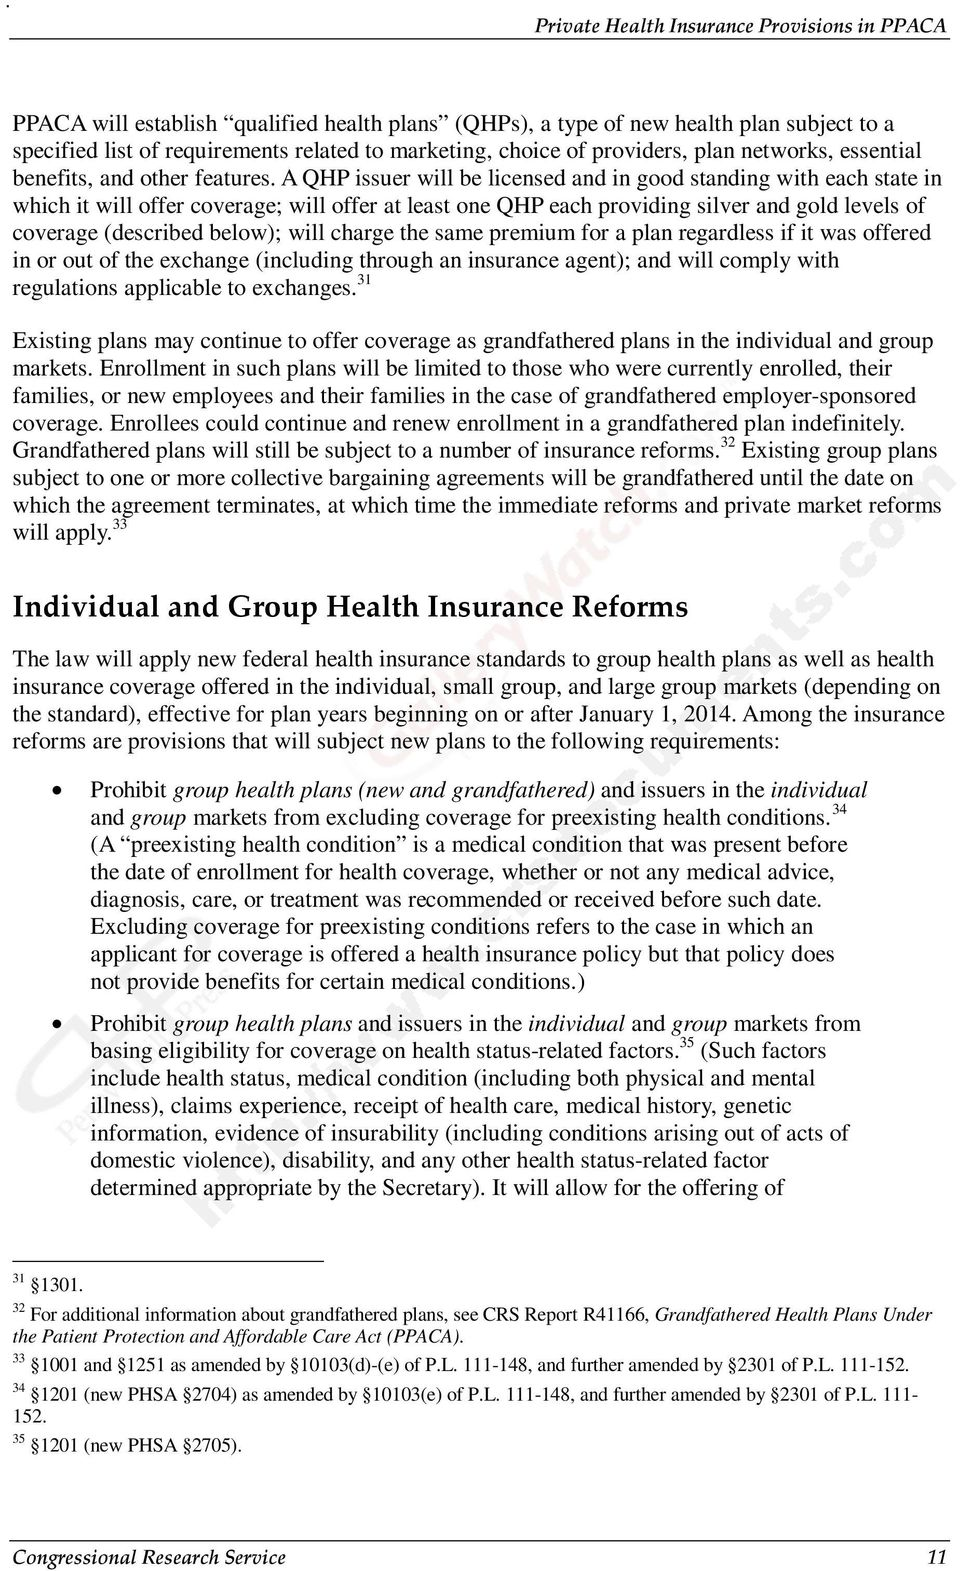 A QHP issuer will be licensed and in good standing with each state in which it will offer coverage; will offer at least one QHP each providing silver and gold levels of coverage (described below);